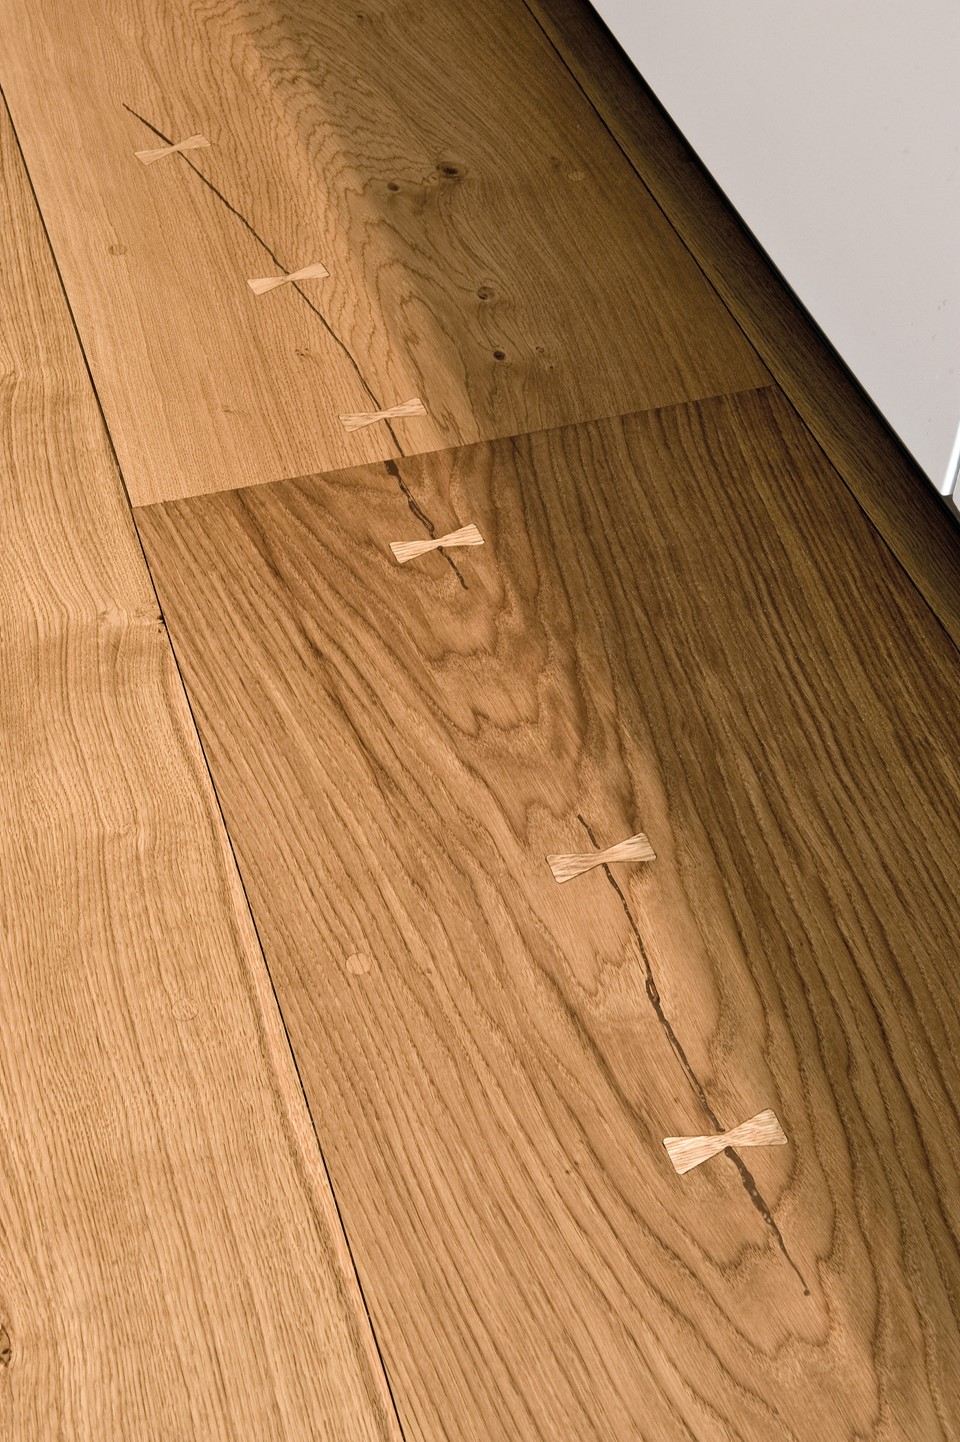 oak-hardwood-floors-heartoak_natural-oil_strib-residence_close-up_dinesen_02.jpg